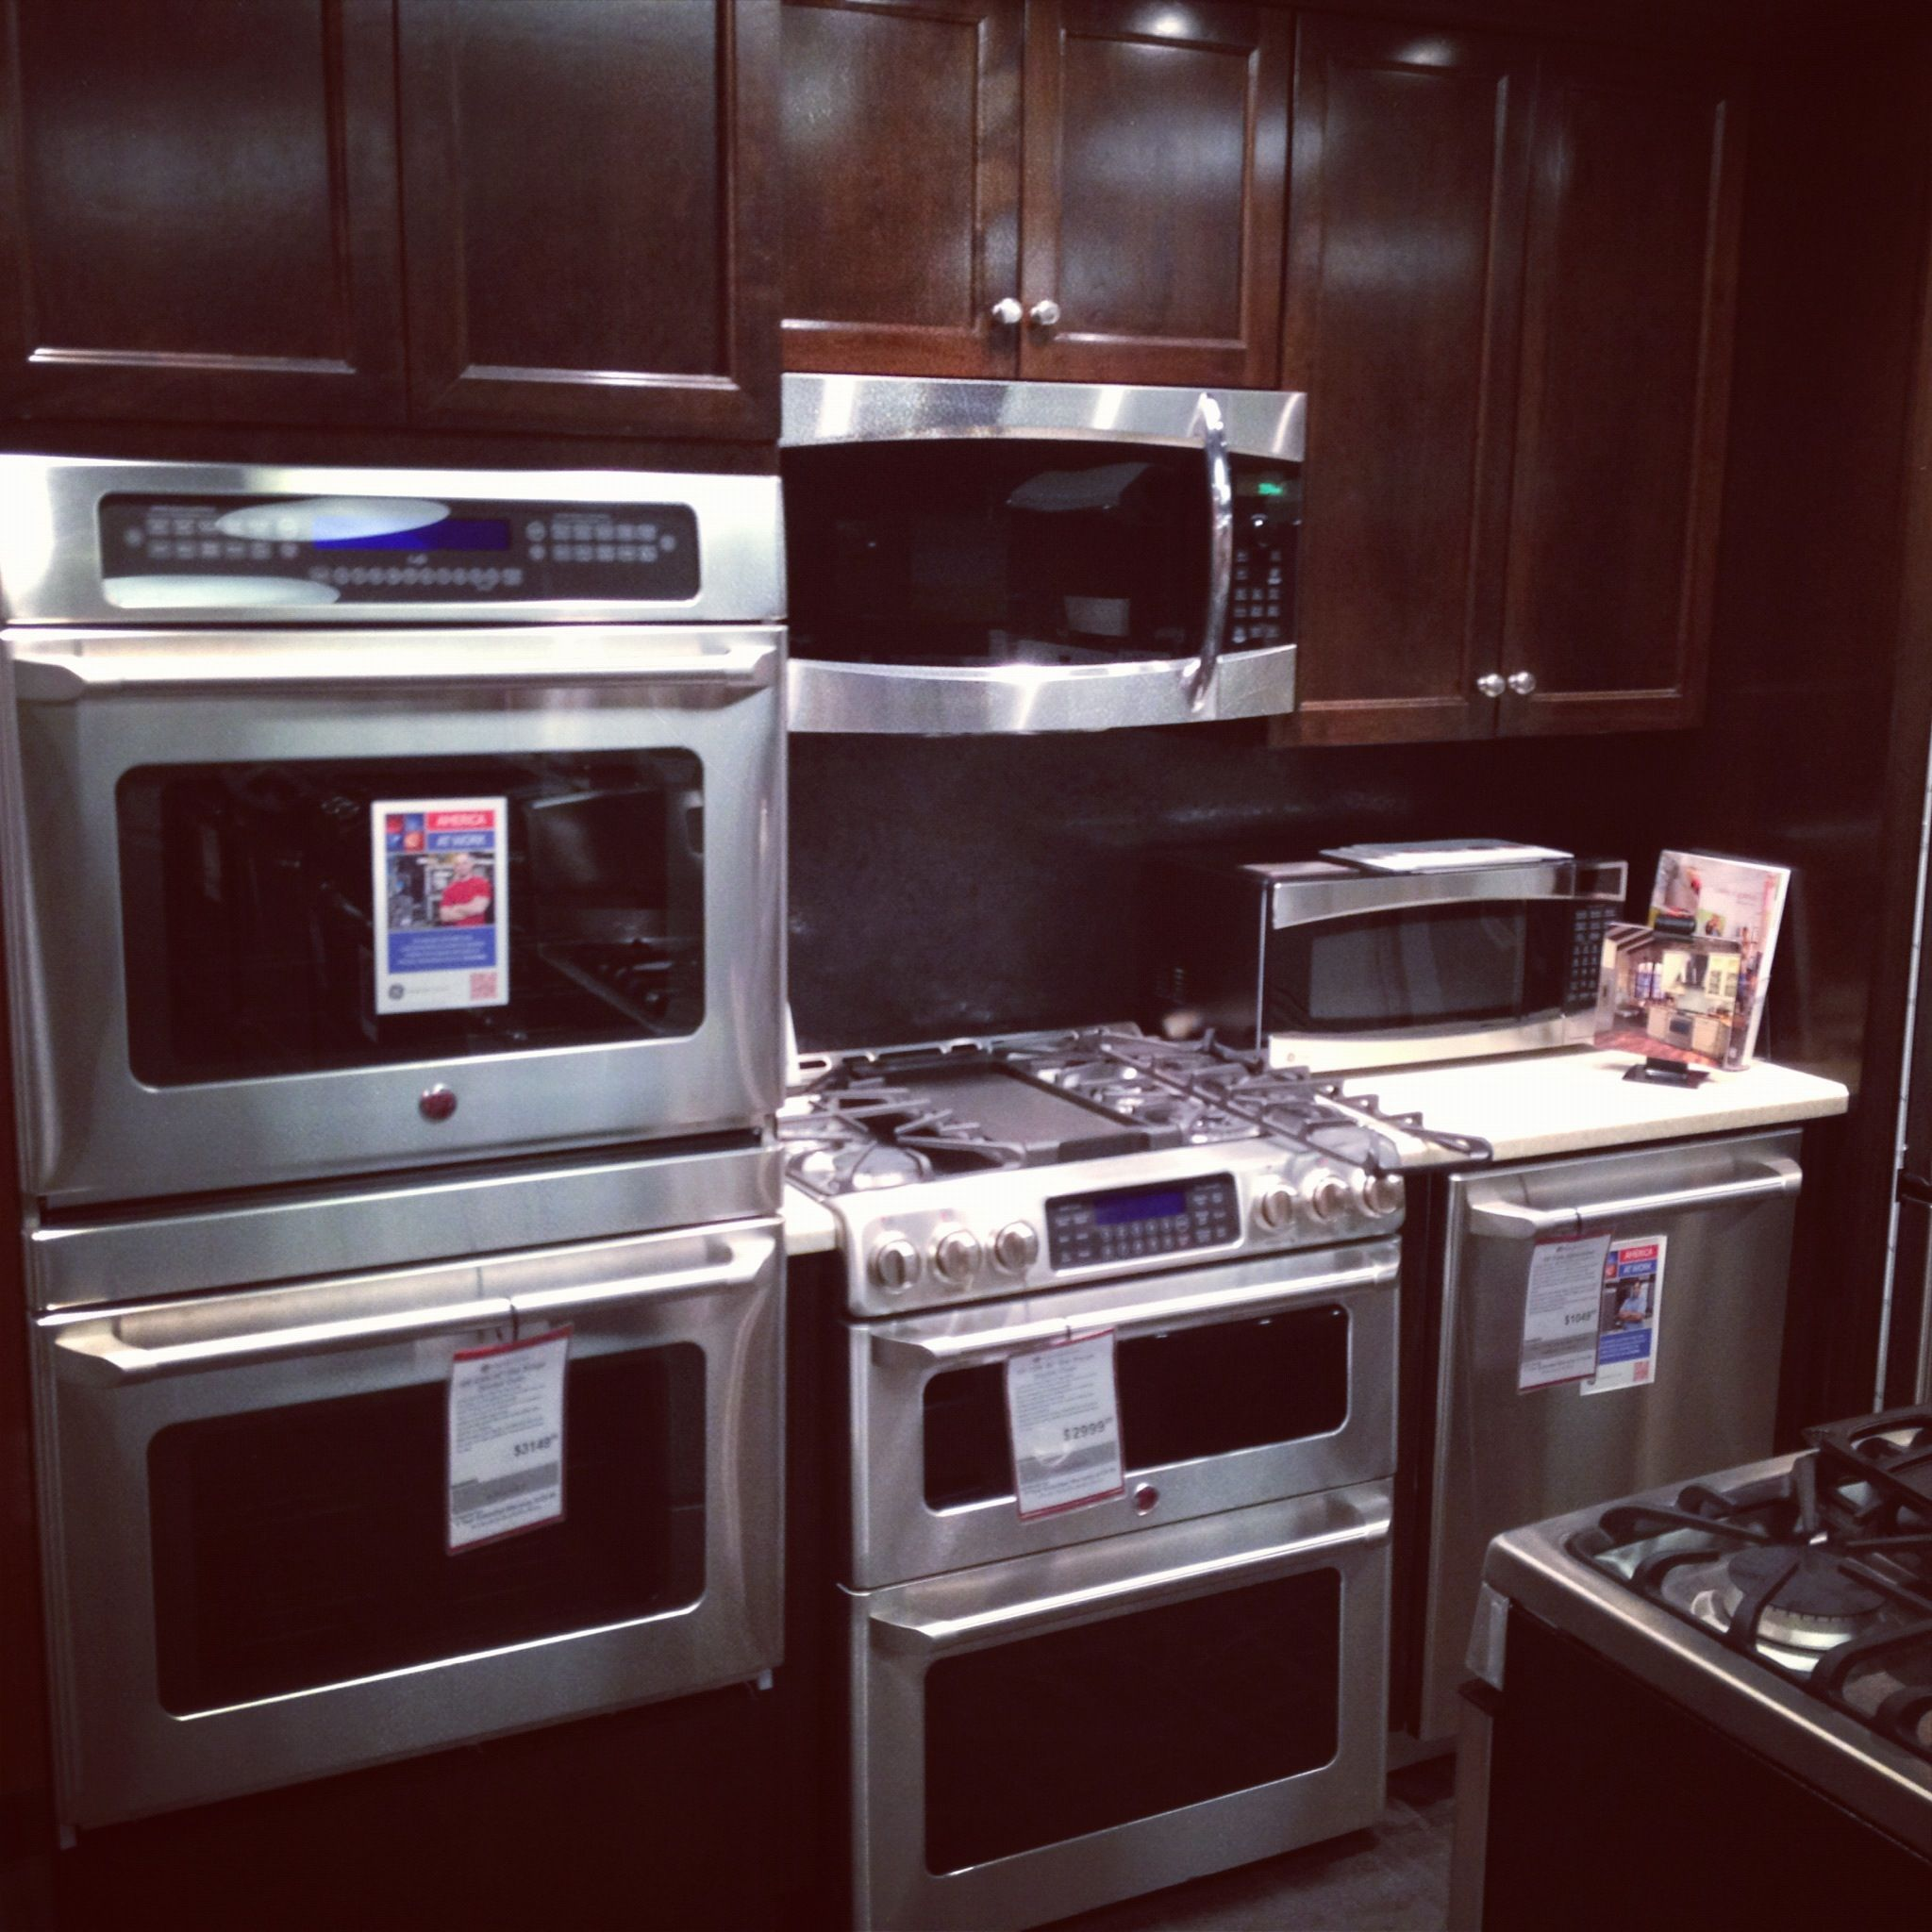 GE cafe Kitchen at Gerhards Appliances with a gas double oven slide ...